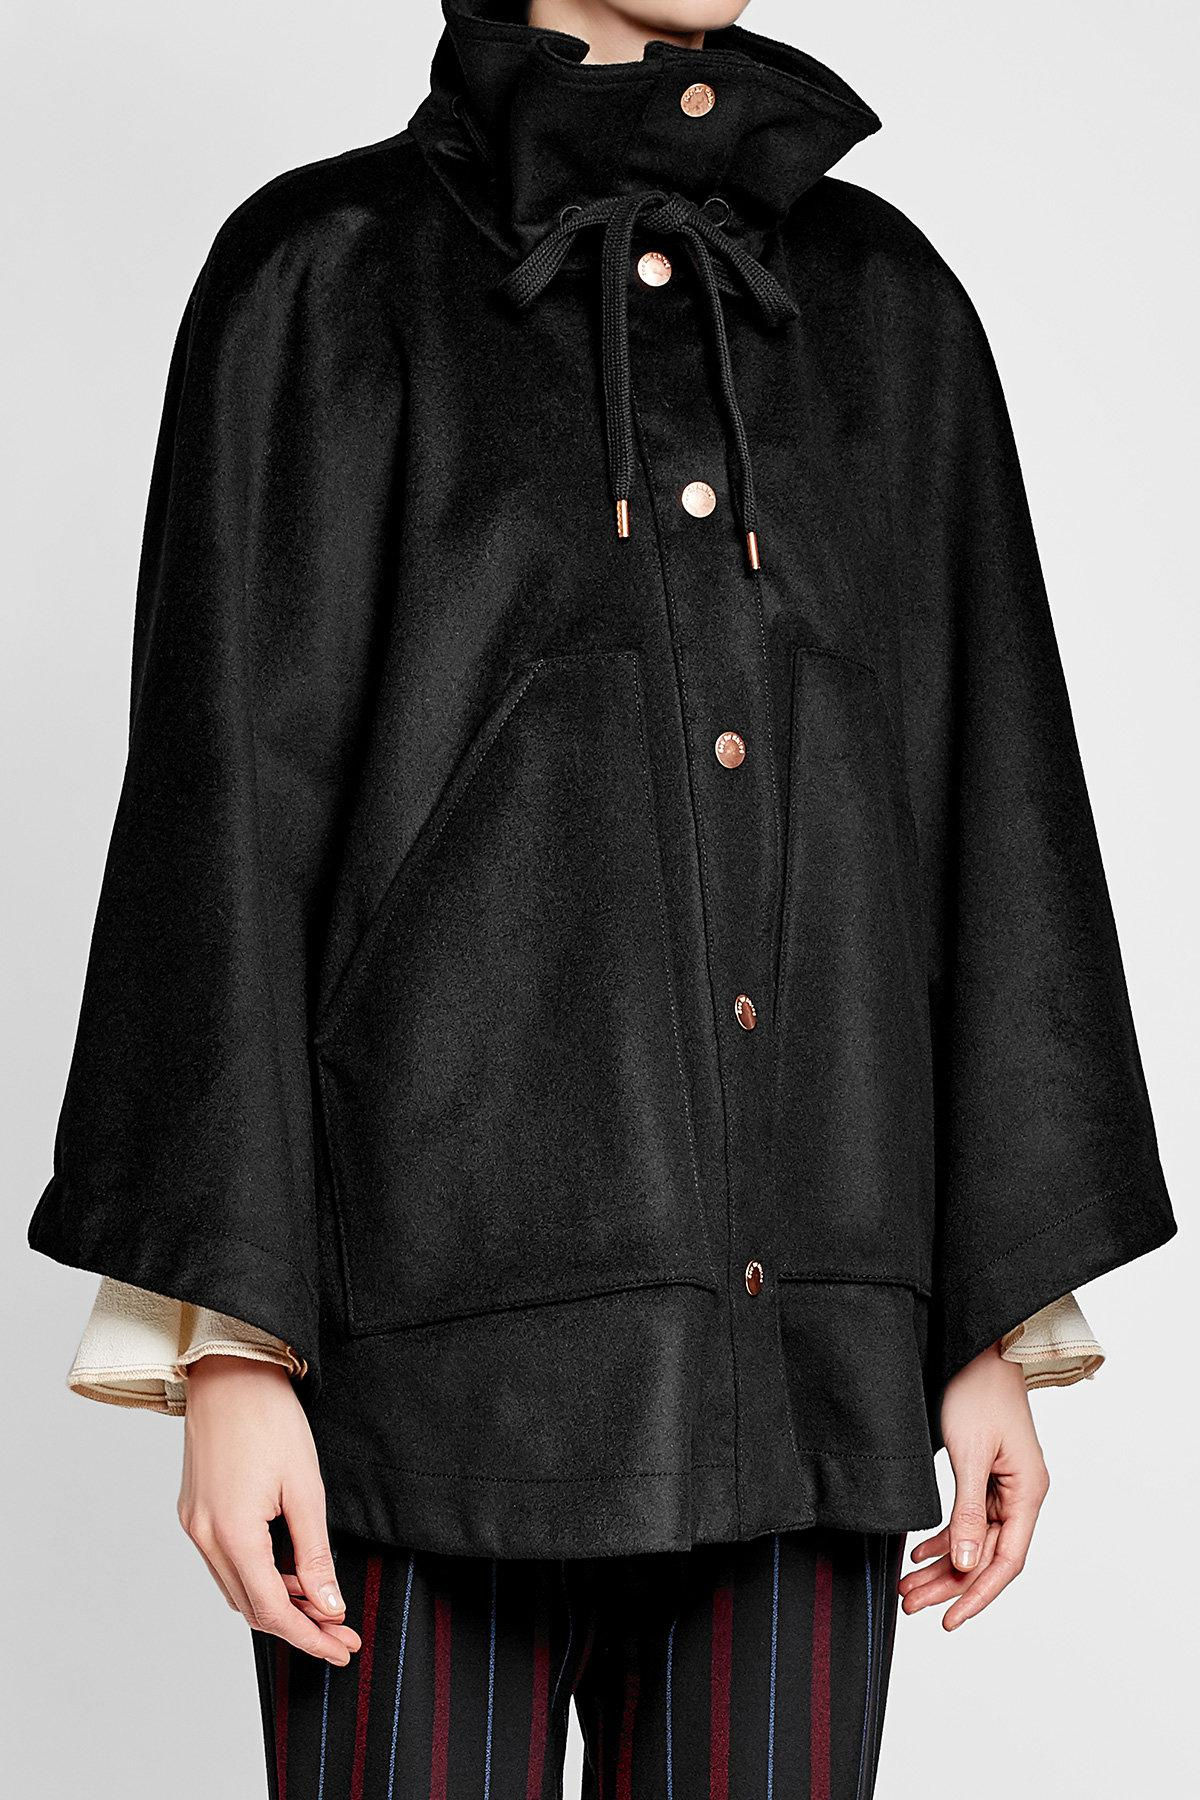 cdcfdb8f3b See By Chloé Cape Coat With Wool in Black - Lyst